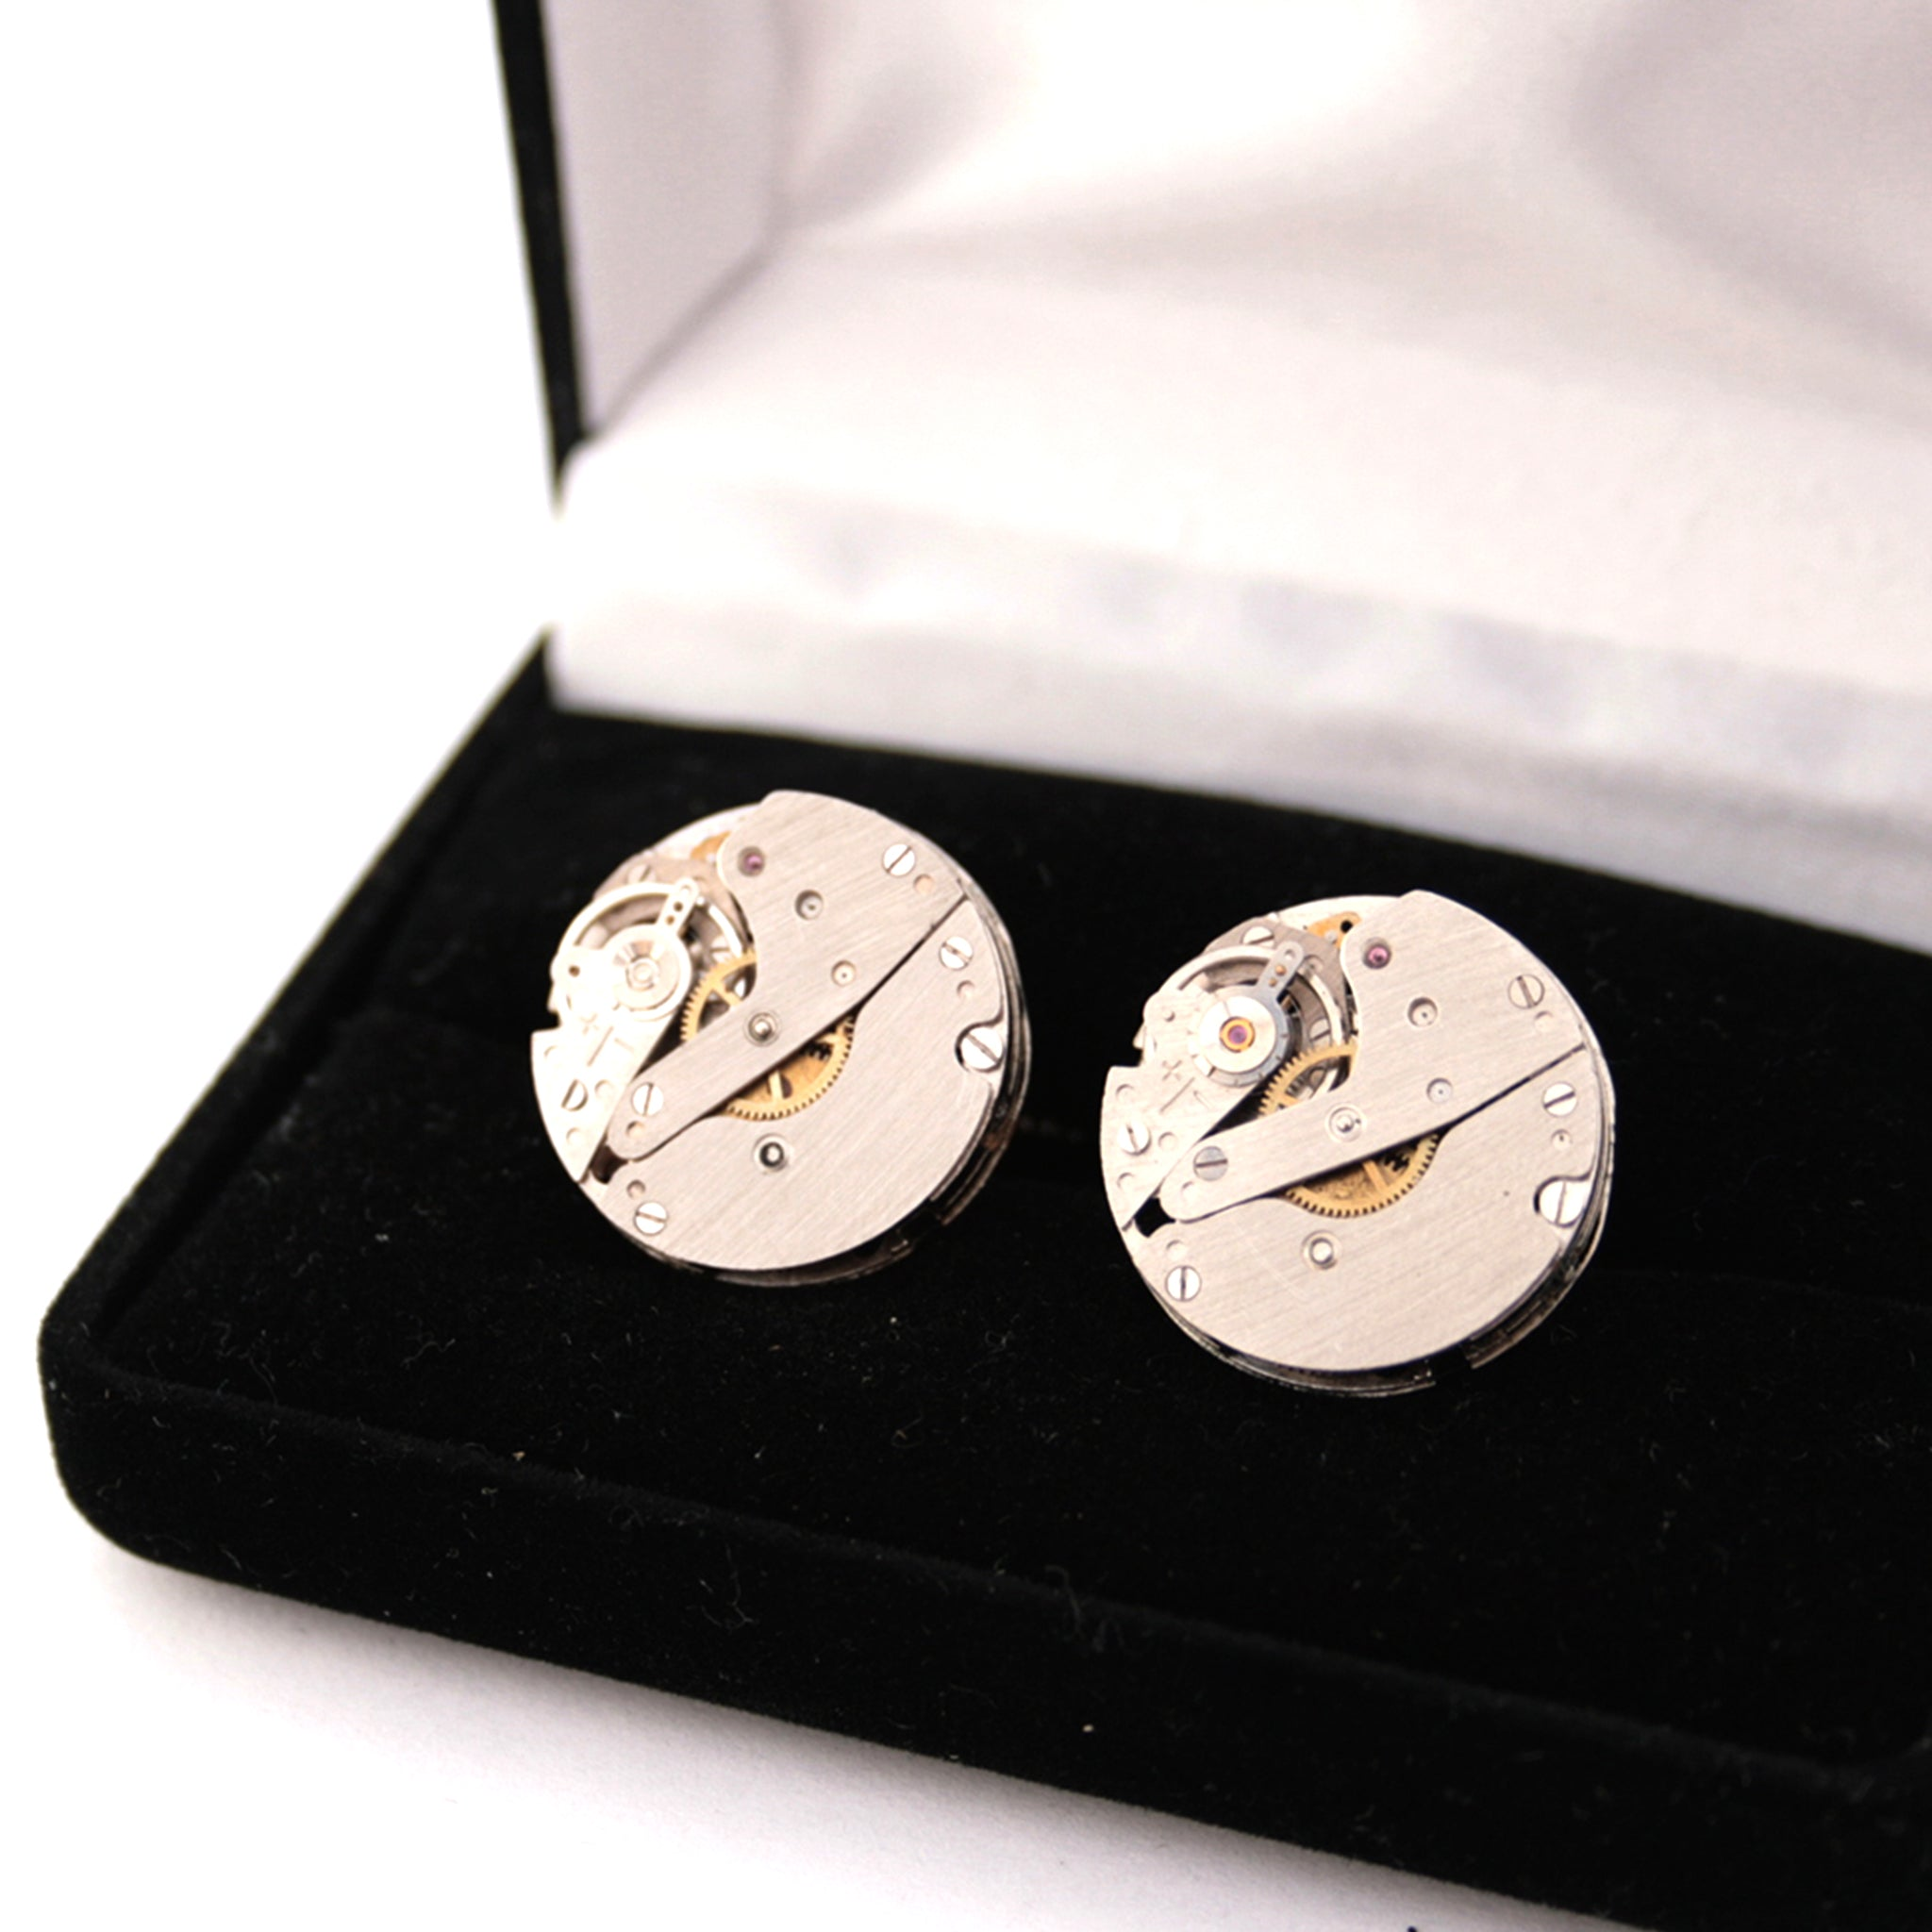 Novelty Cufflinks made of Watch Movements